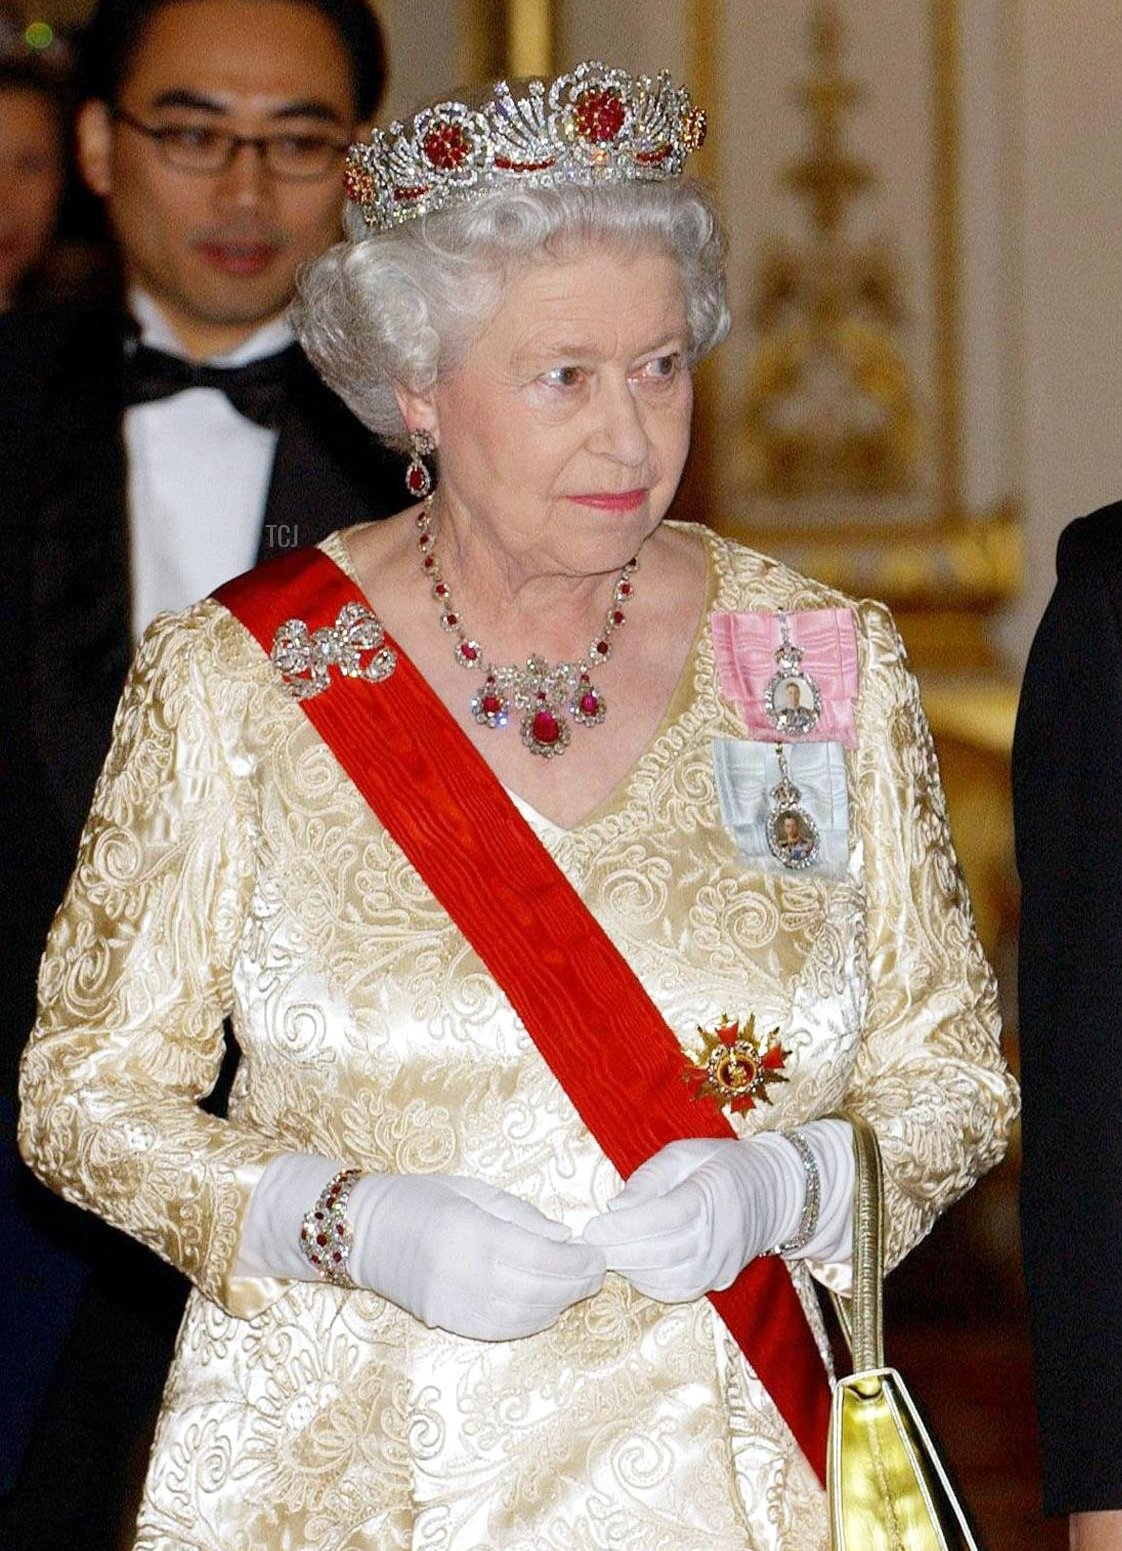 Britain's Queen Elizabeth II and President Roh Moo-Hyun of South Korea arrive for a state banquet at Buckingham Palace, in London, 01 December 2004, on the second day of the president's state visit to the capital